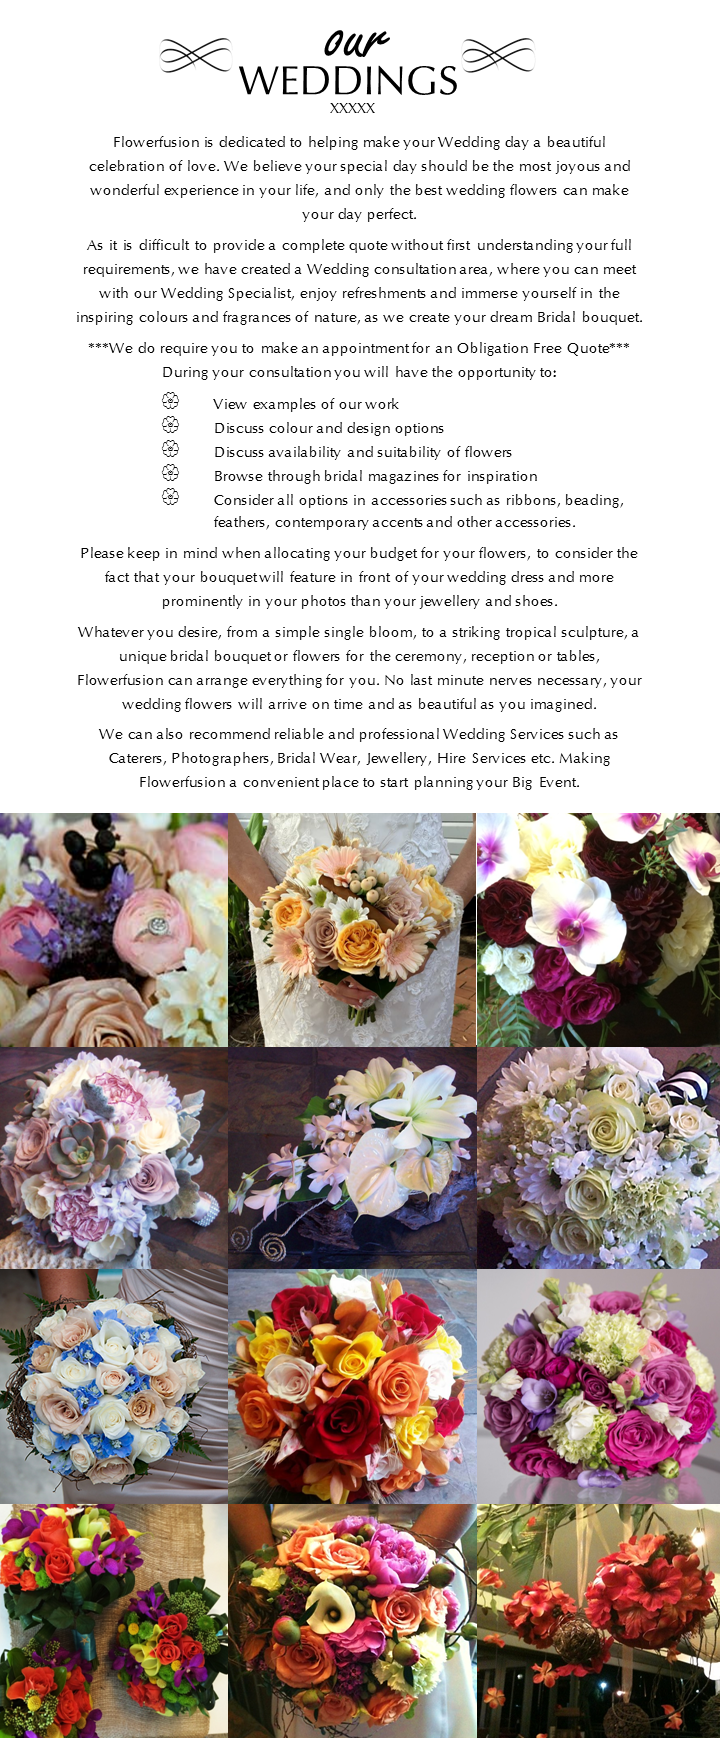 website-our-weddings2-2017.png